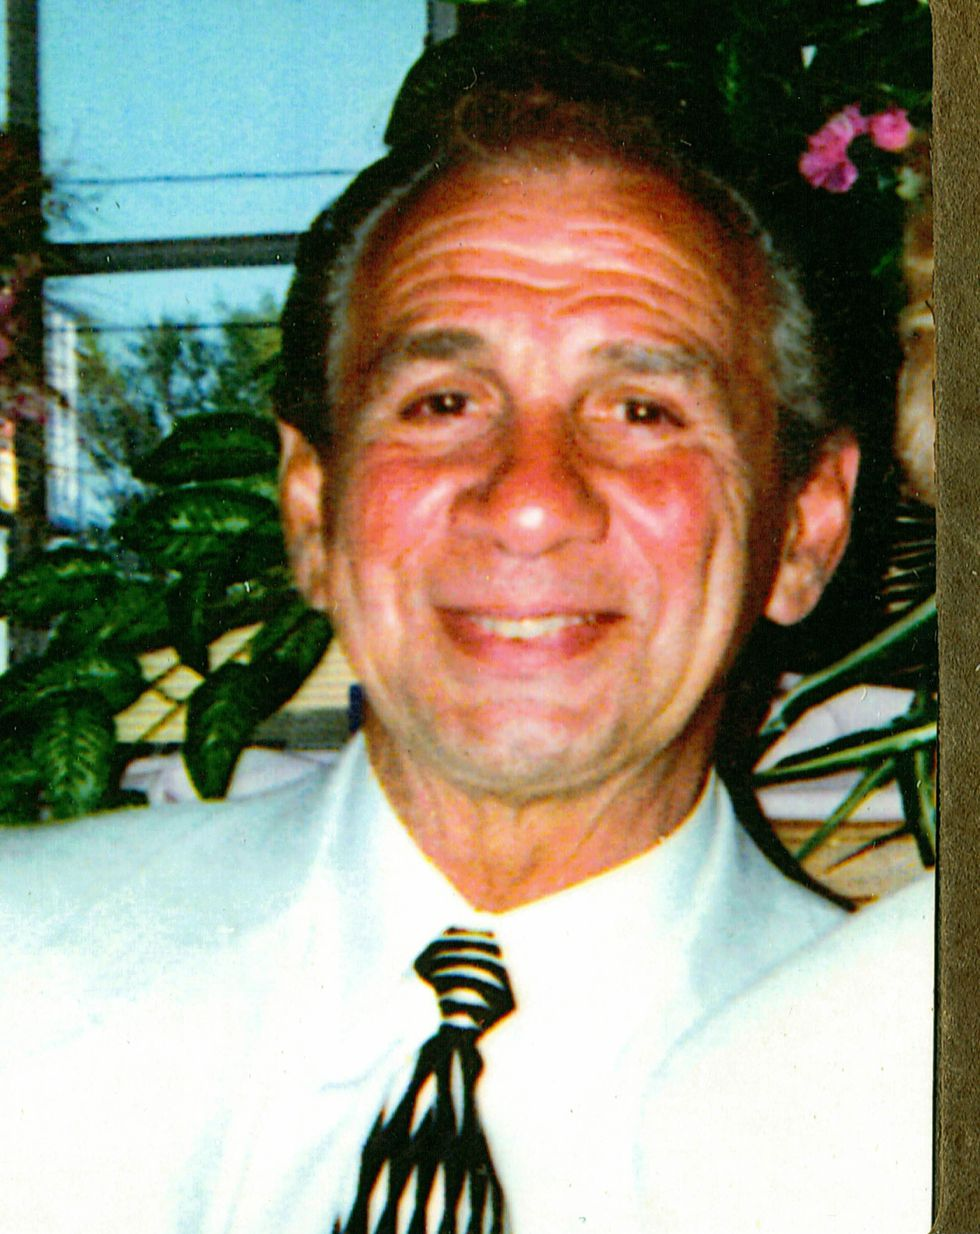 """Lello A. """"Budgo"""" Alteri, of 201 Creekwood Dr., Watertown, passed away May 10, 2021 at the..."""